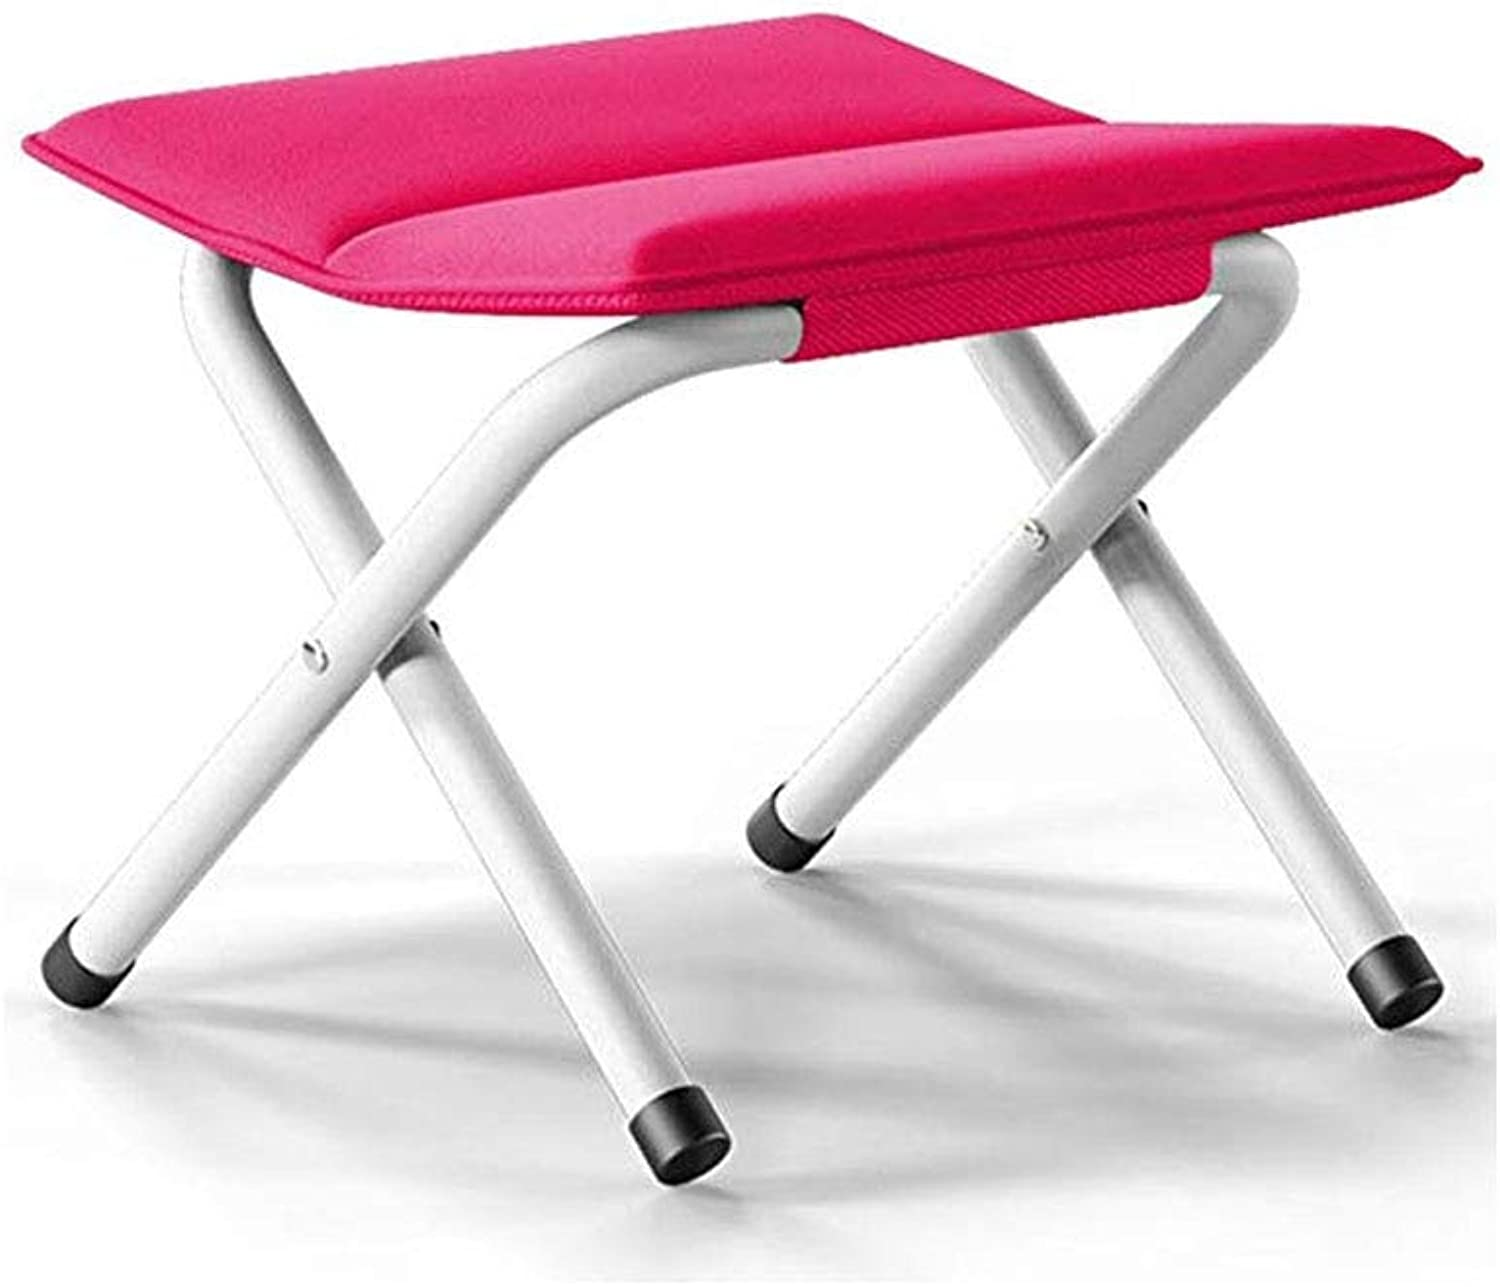 Footstool, Folding Chair Fabric Stool Portable Multifunctional Folding Stool Sofa Stool (color   pink red)